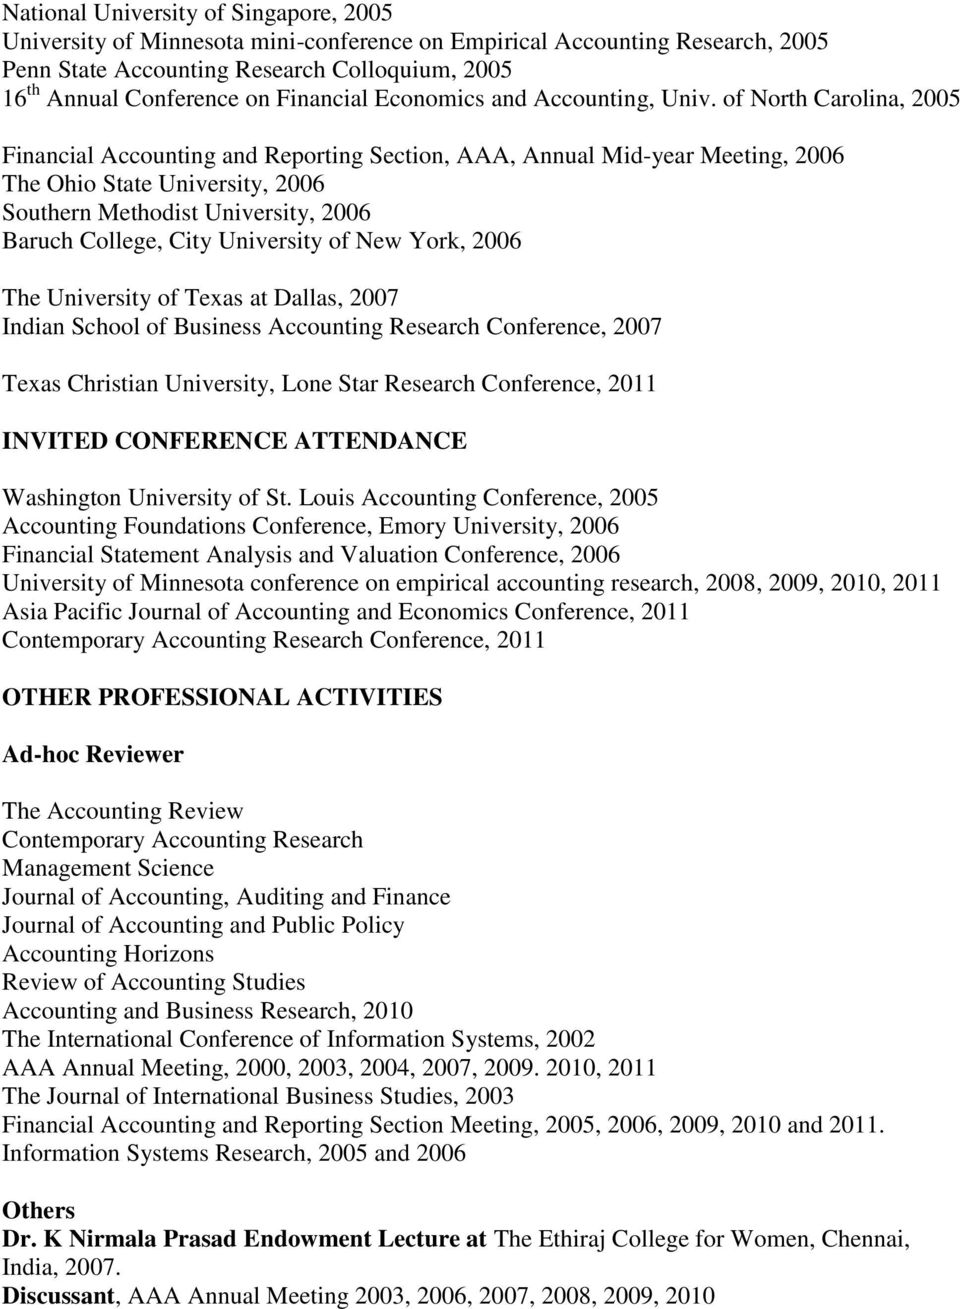 of North Carolina, 2005 Financial Accounting and Reporting Section, AAA, Annual Mid-year Meeting, 2006 The Ohio State University, 2006, 2006 Baruch College, City University of New York, 2006 The